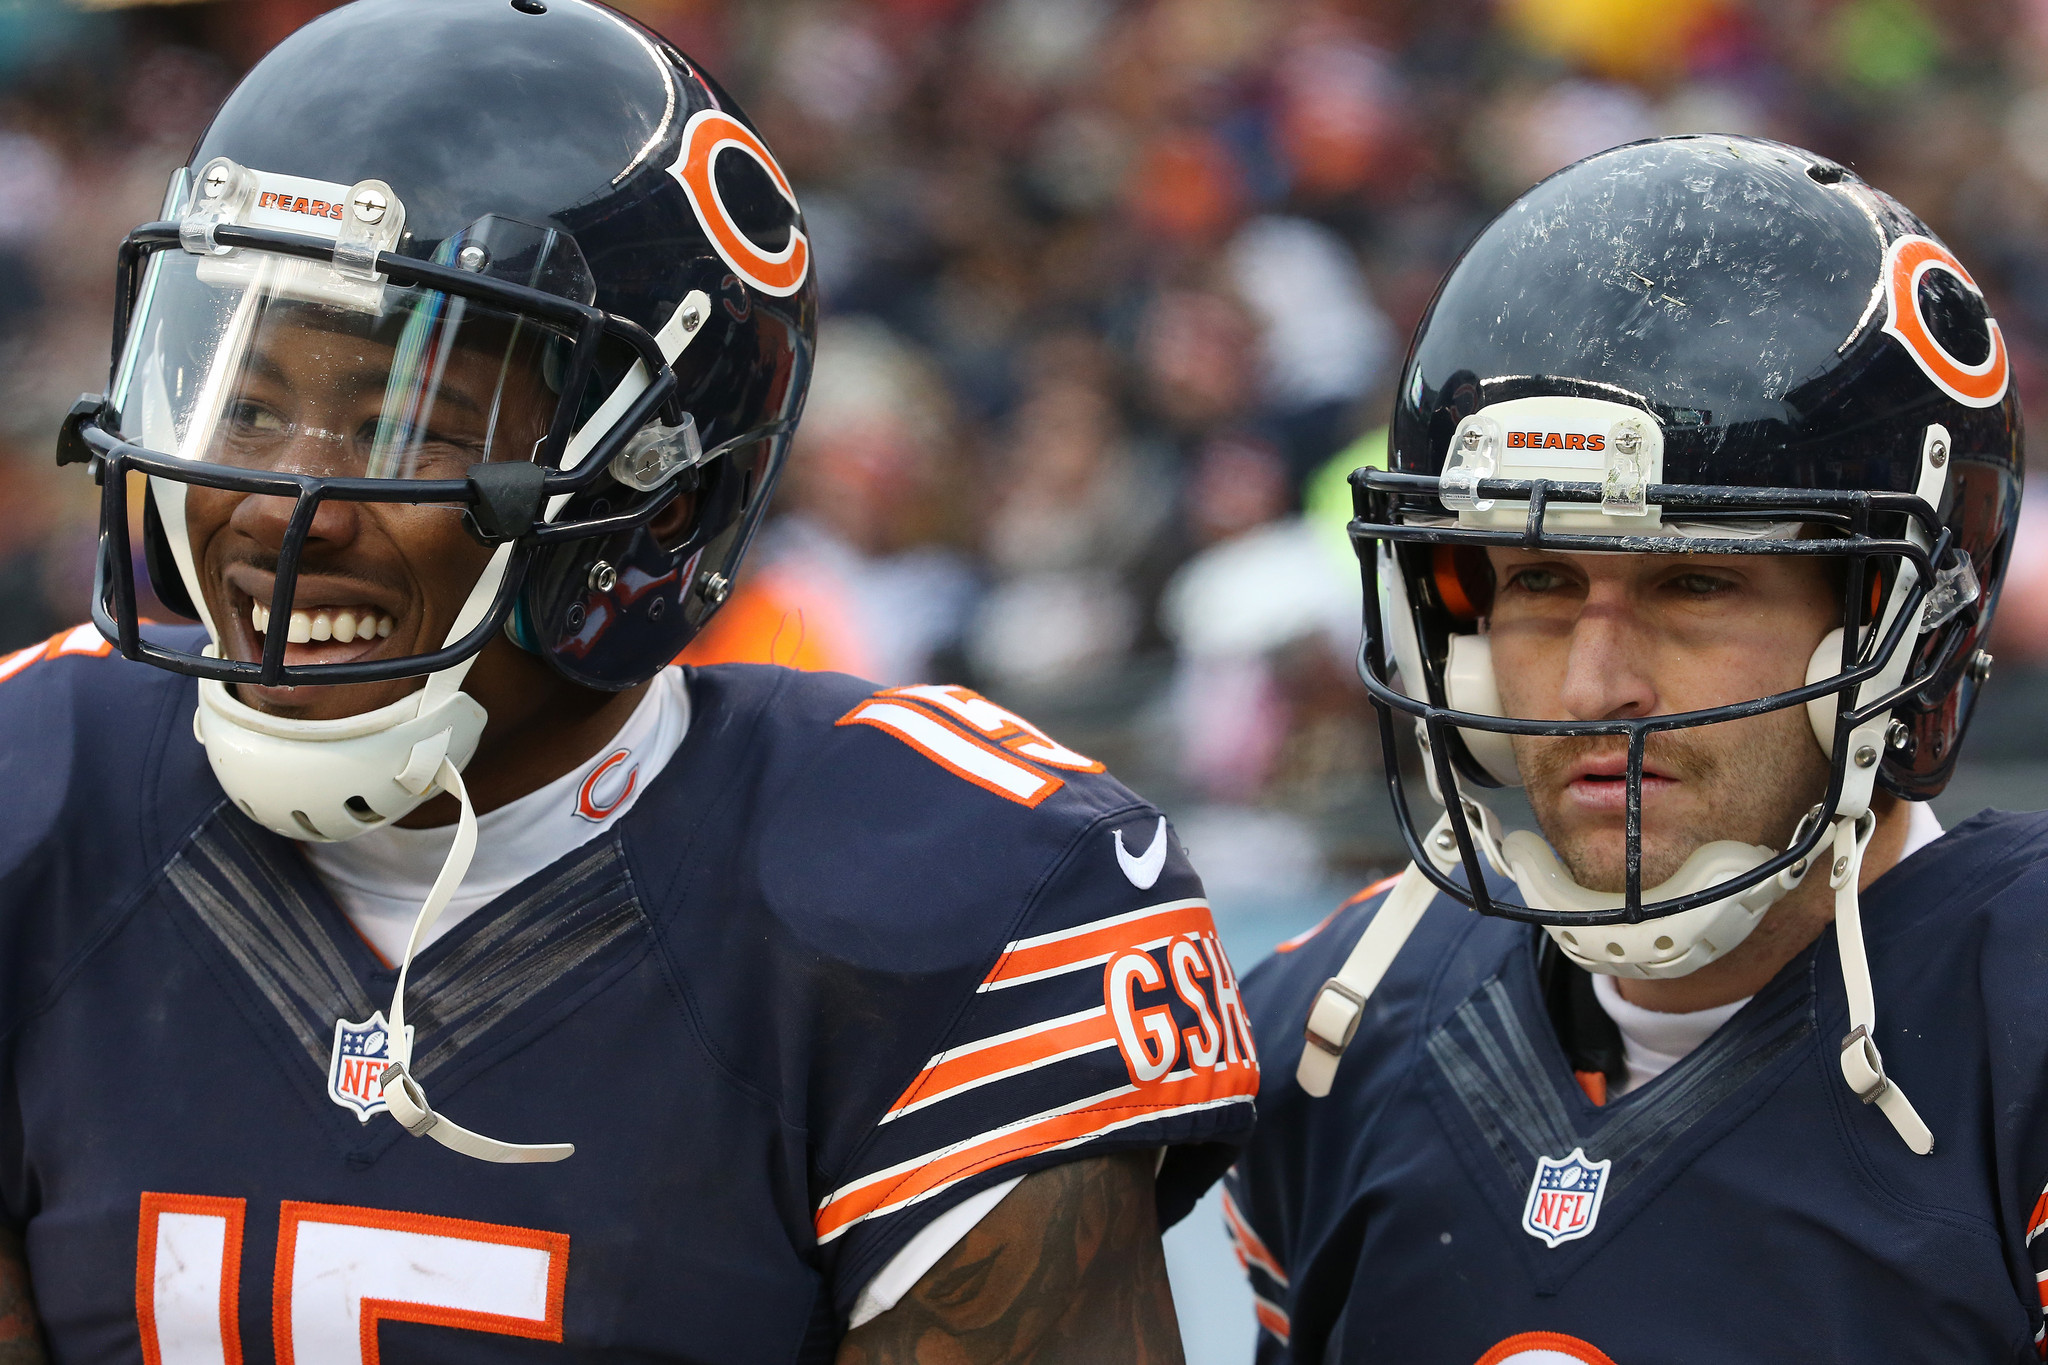 brandon marshall supports jay cutler but would have buyer